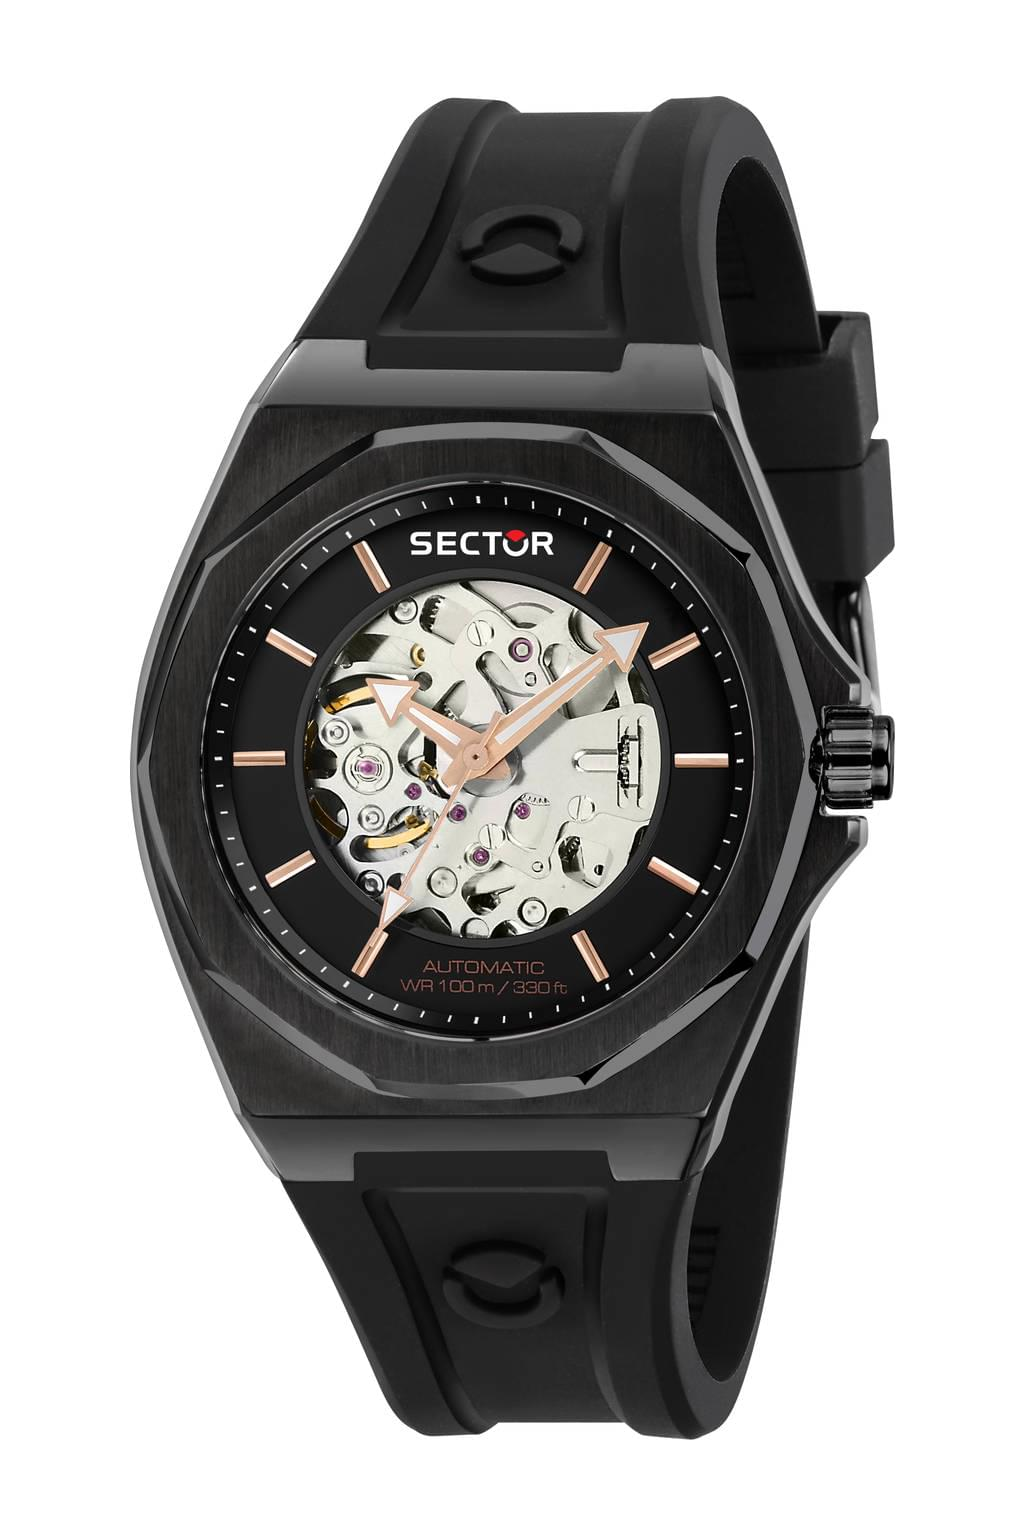 960 SKELETON AUTOMATIC — R3221528001